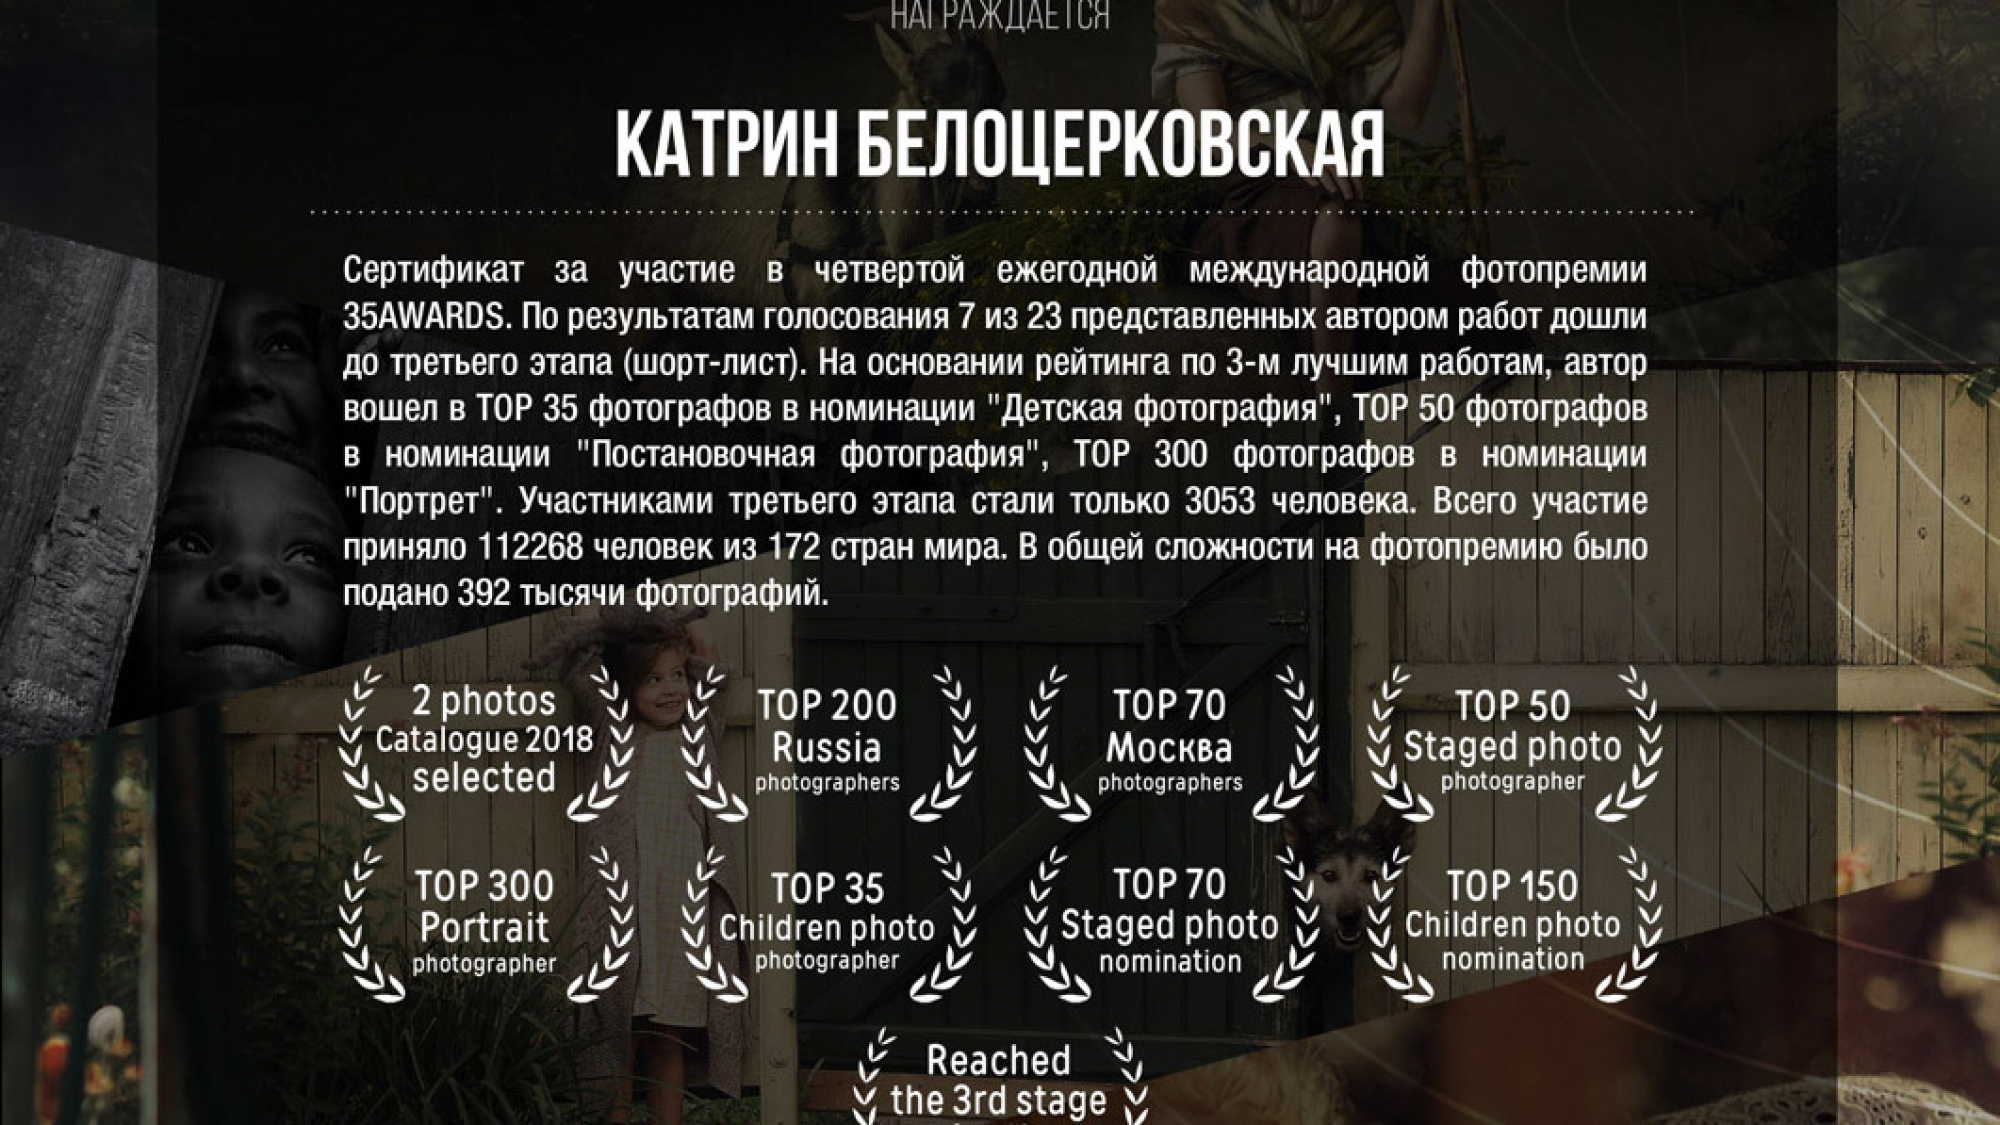 35awards2018_ru-hor